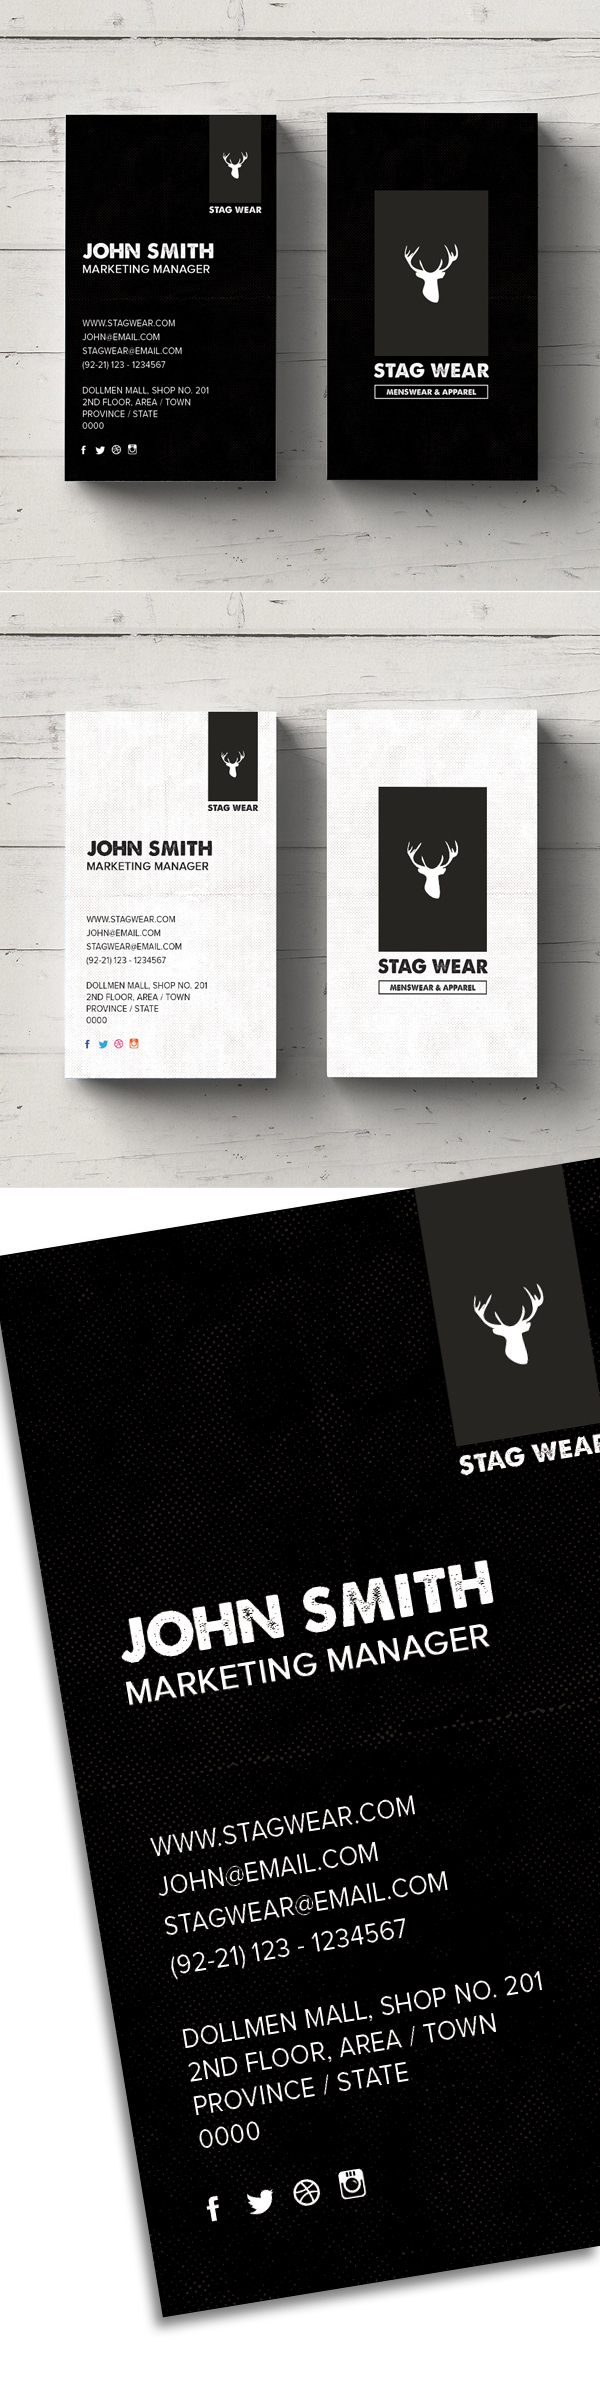 Freebie vertical business card psd template freebies graphic free vertical business card psd template accmission